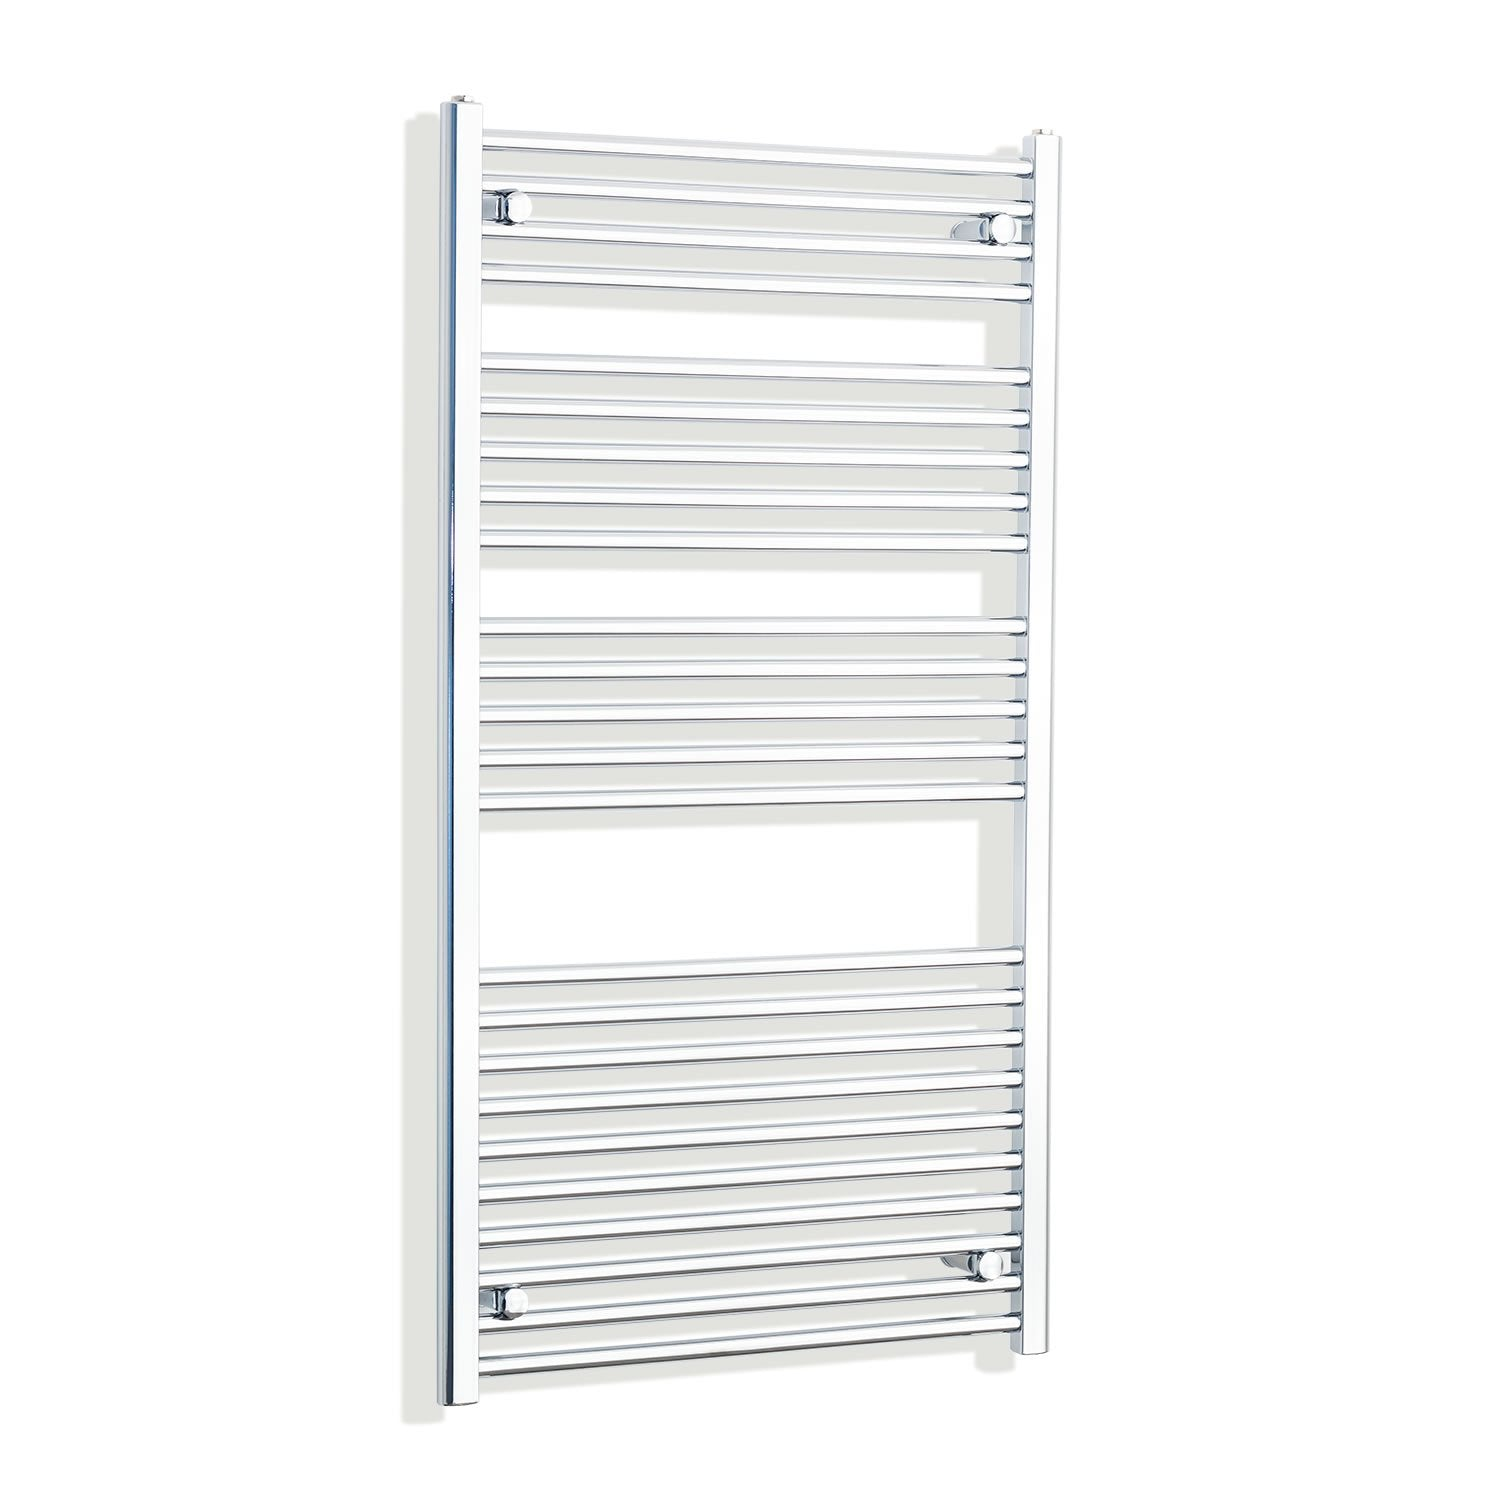 700mm Wide 1300mm High Curved Chrome Heated Towel Rail Radiator HTR,Towel Rail Only